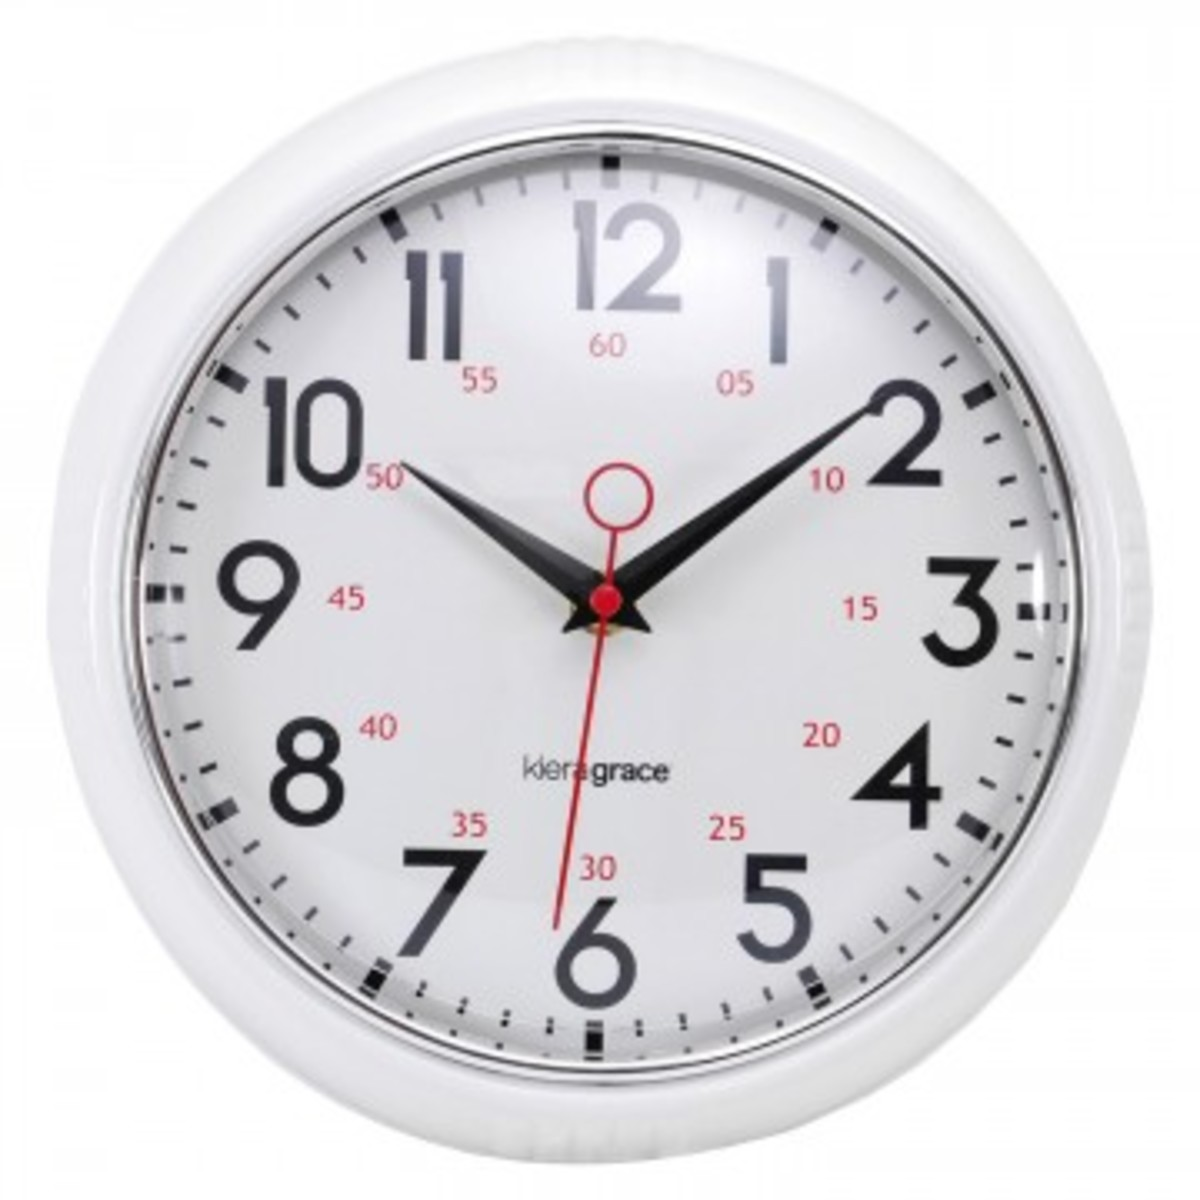 Budget your time and learn to use your time more effectively